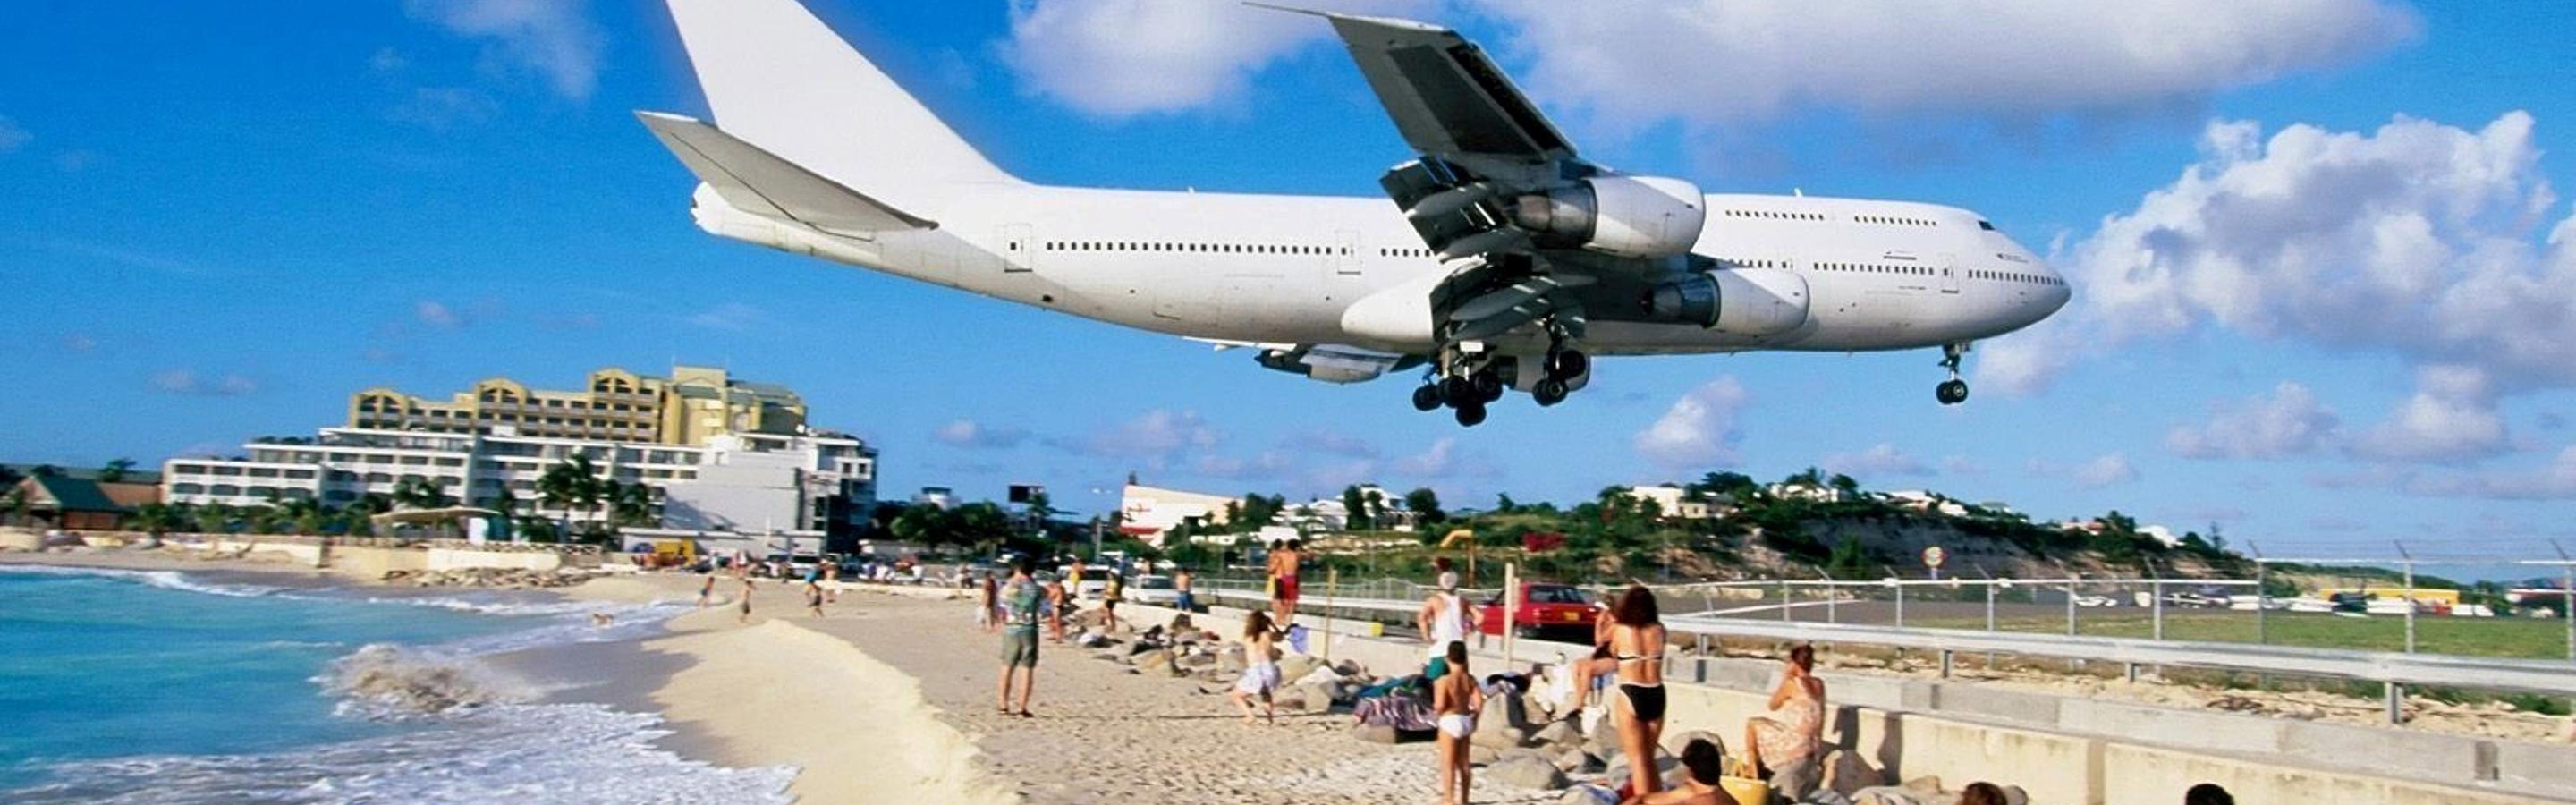 http://www.superiorwallpapers.com/download/airplane-above-the-beach-ready-to-land-2880x900.jpg